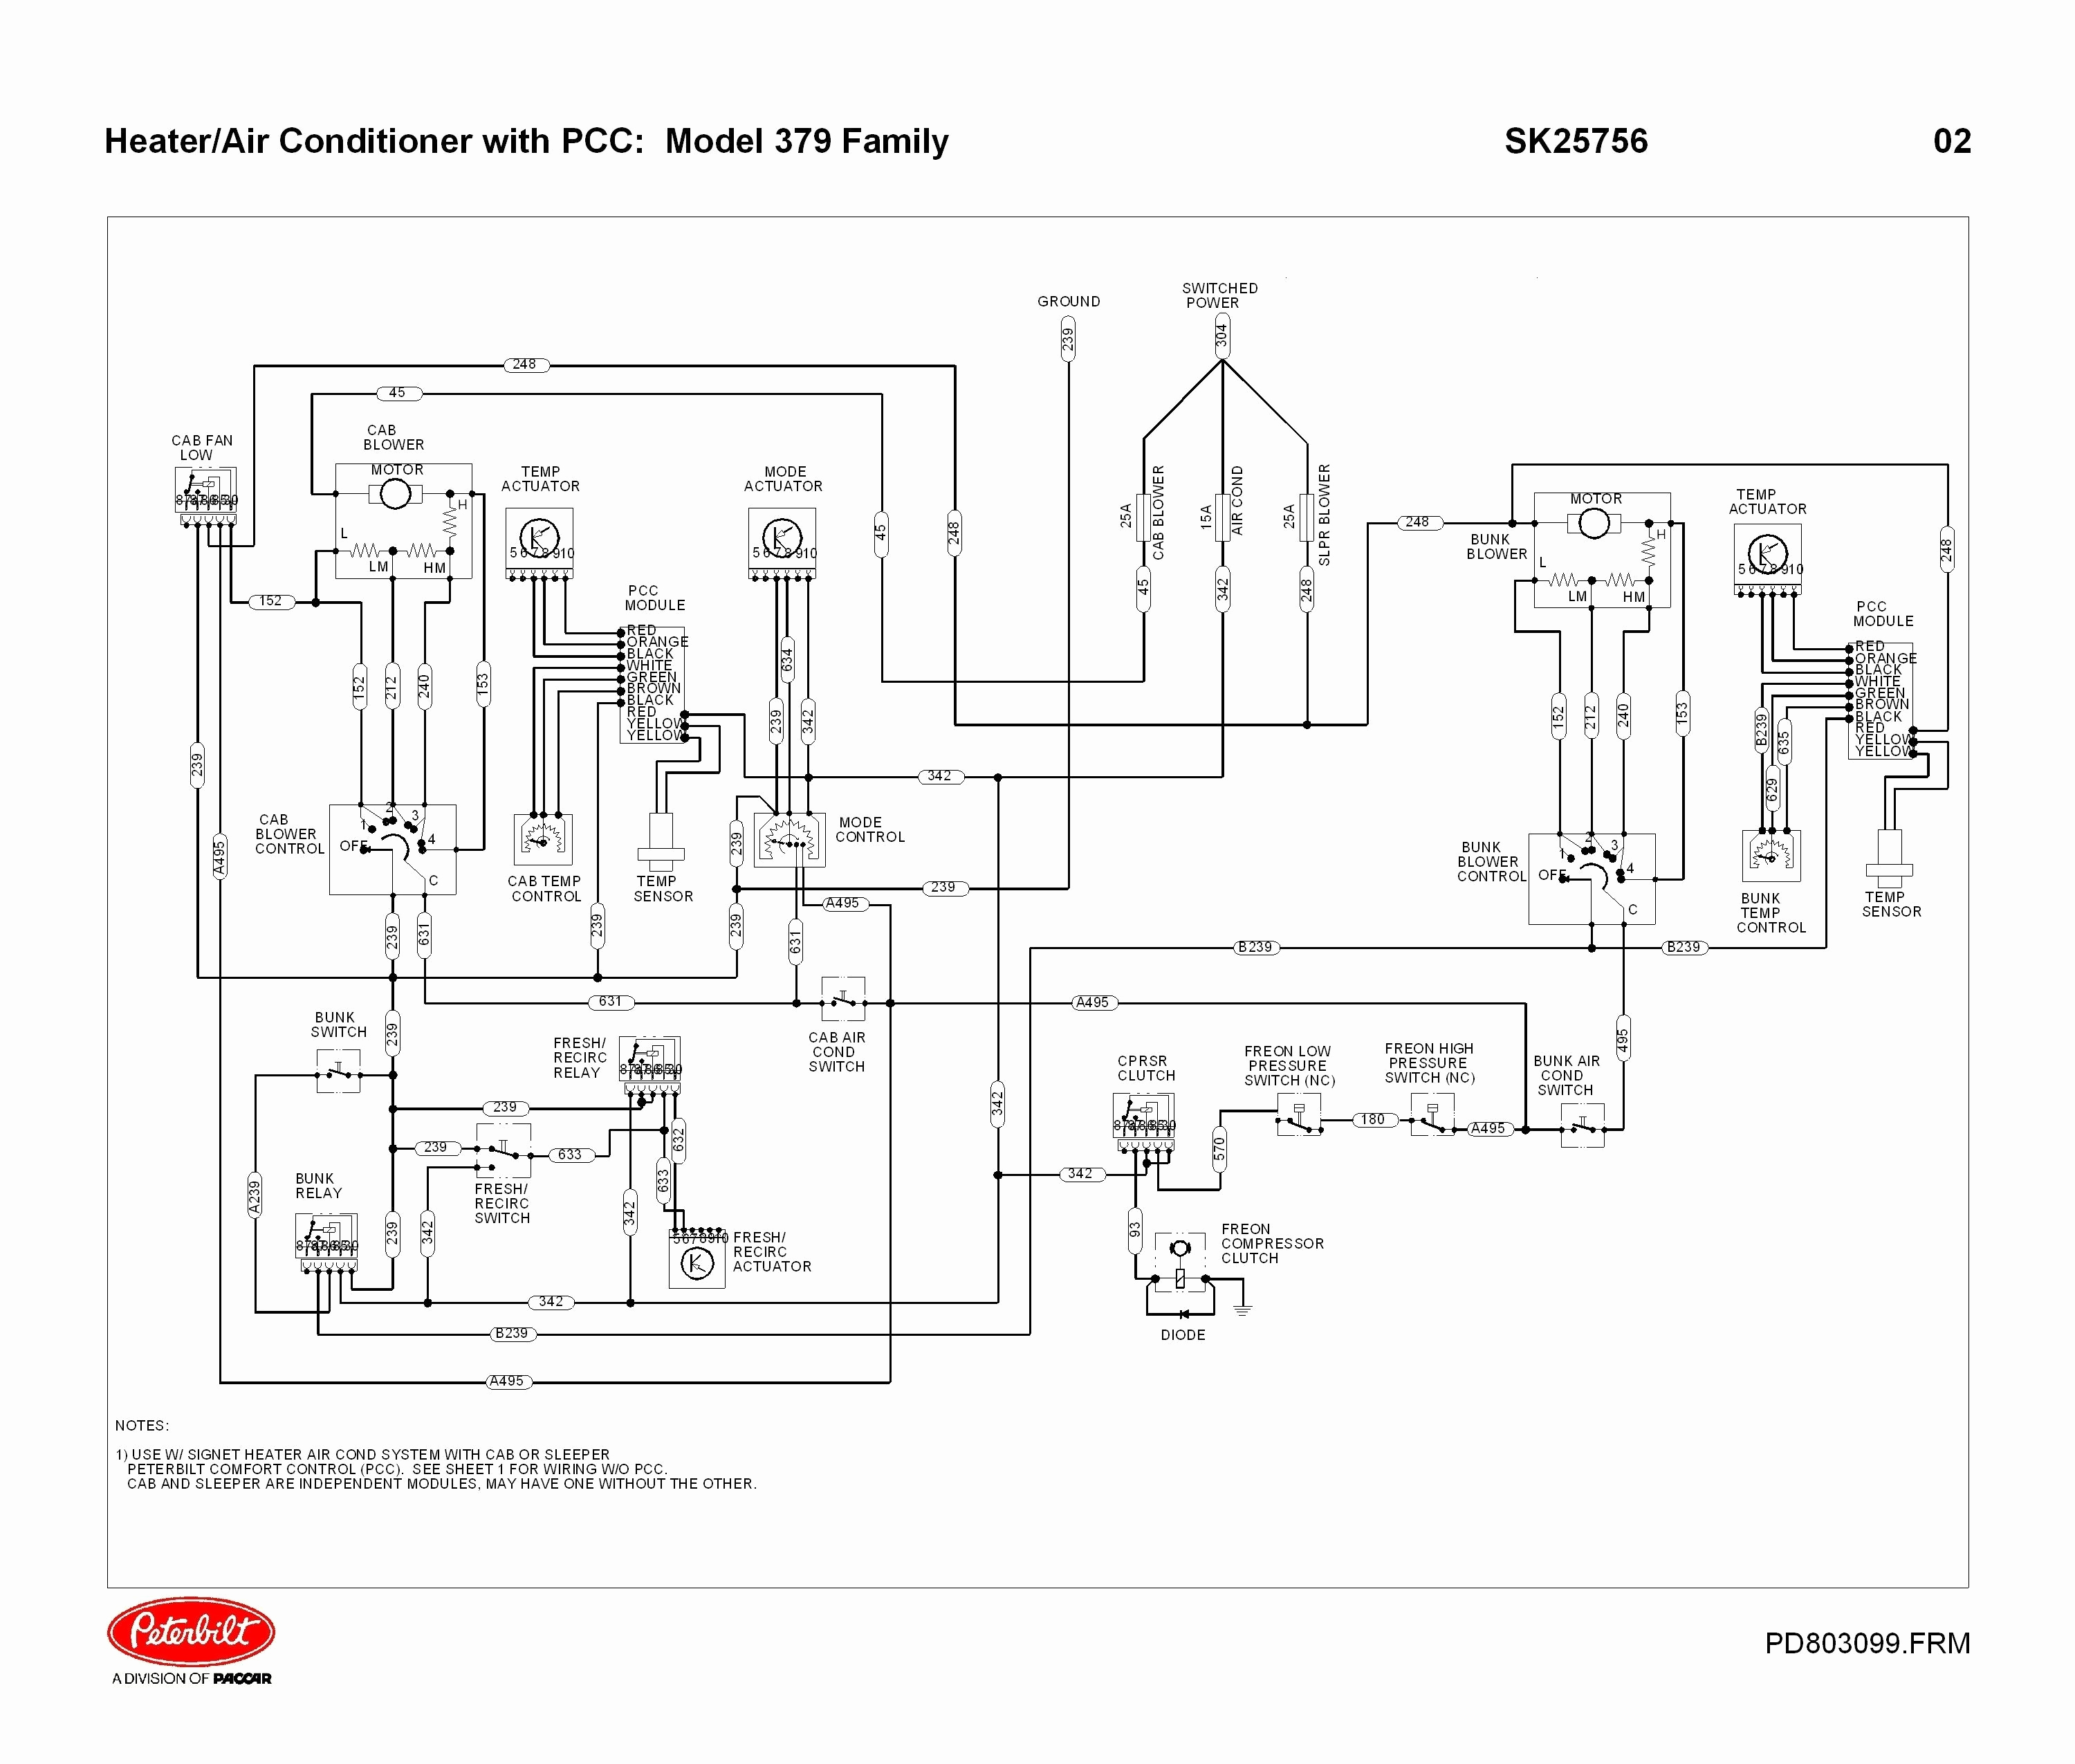 DIAGRAM] 2004 Peterbilt 387 Wiring Diagram FULL Version HD Quality Wiring  Diagram - NEESCOSCHEMATIC4206.FISIOBENESSERESEGRATE.ITfisiobenesseresegrate.it